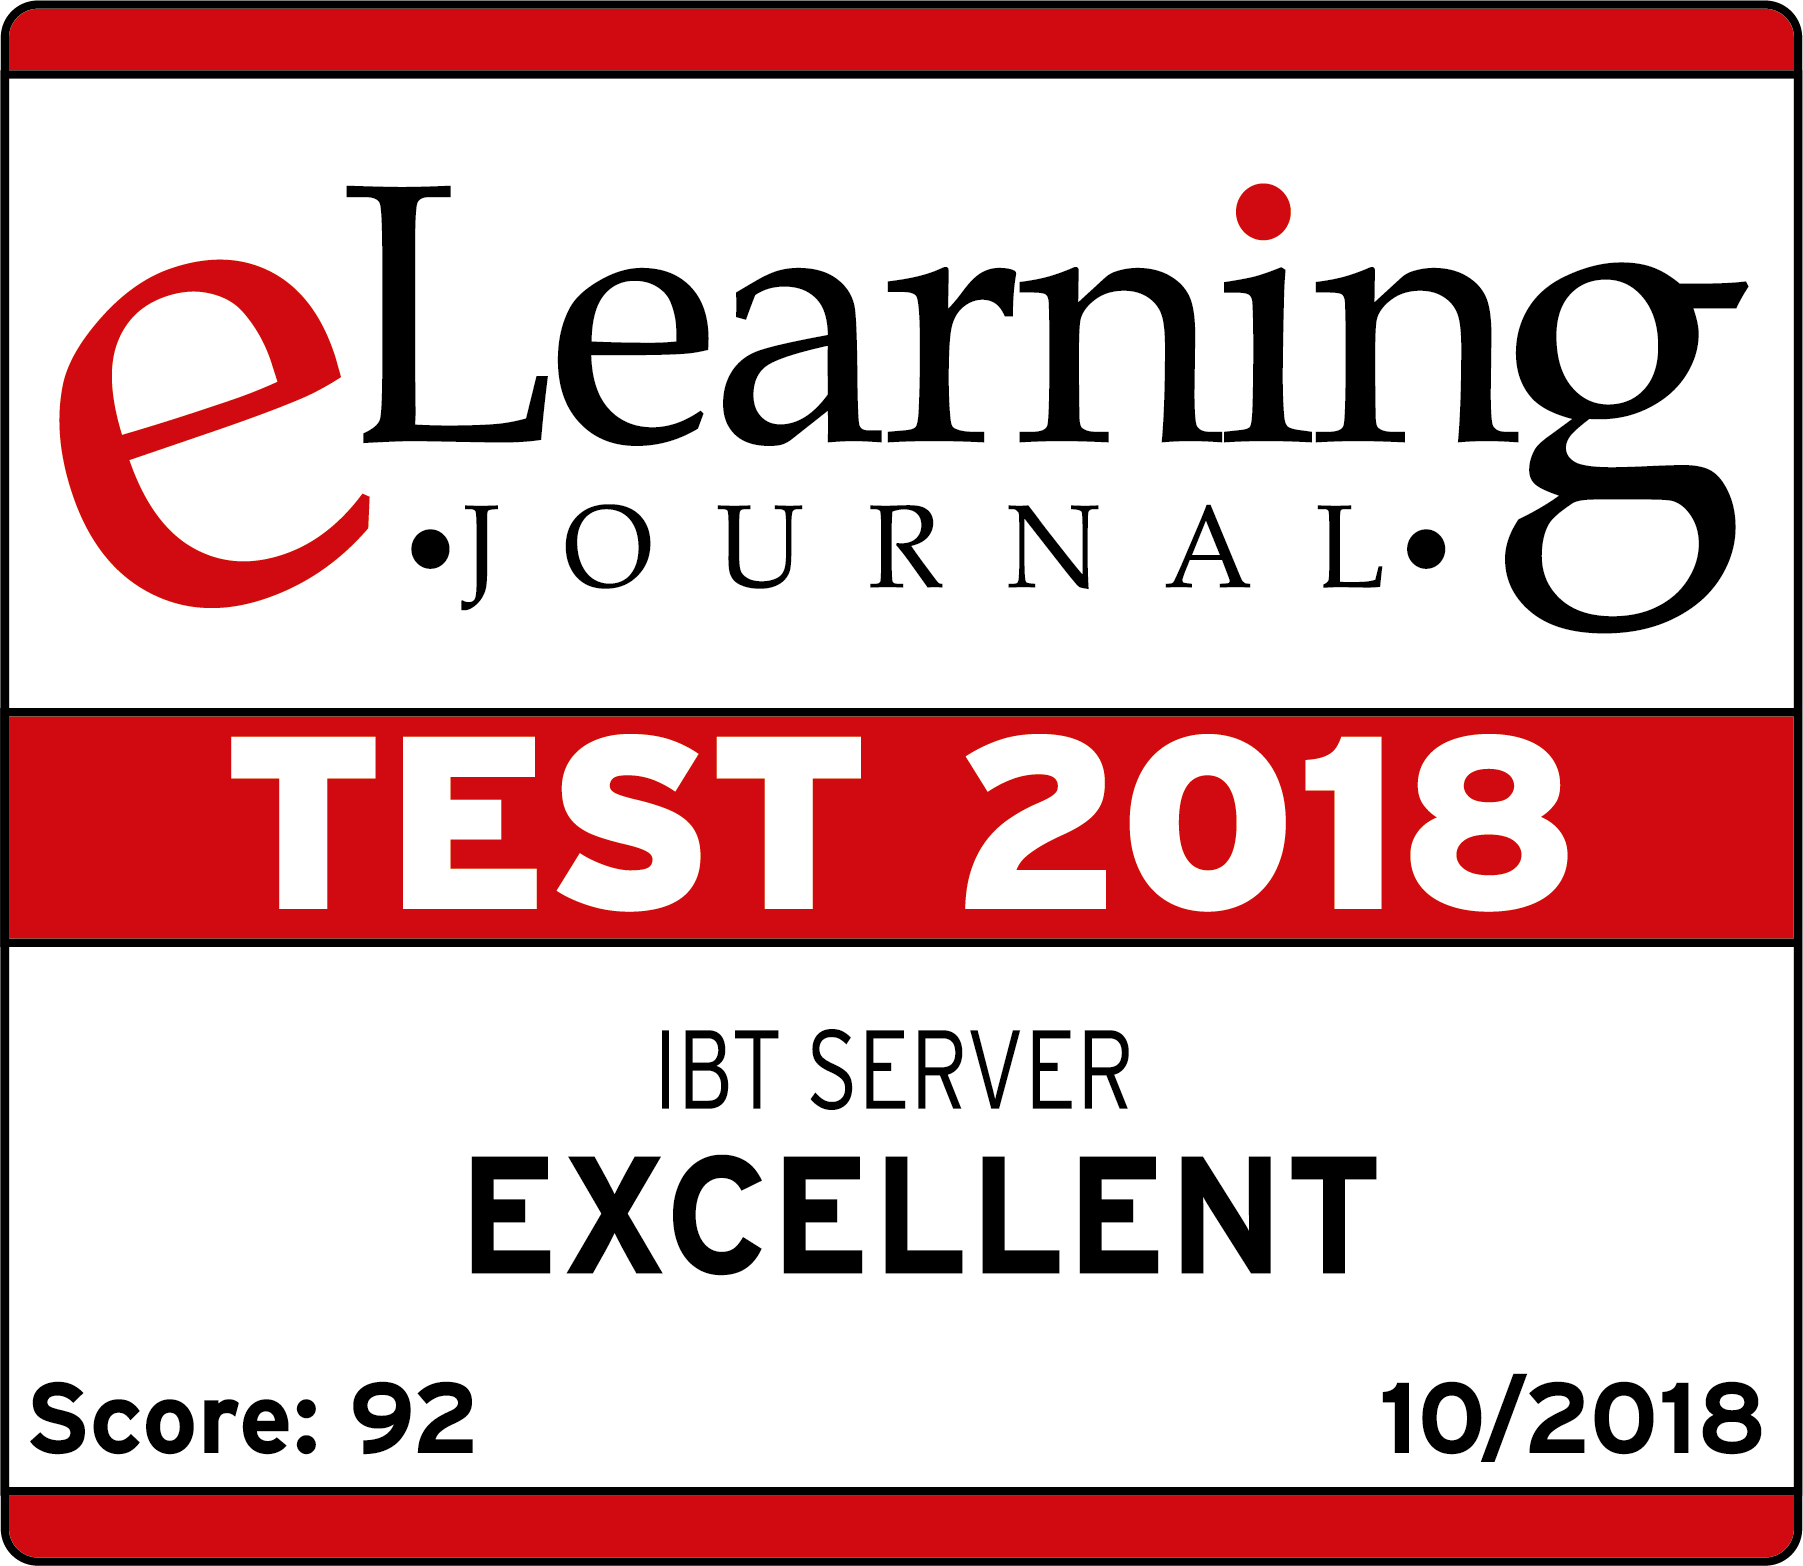 eLearning Journal Testsiegel 2018